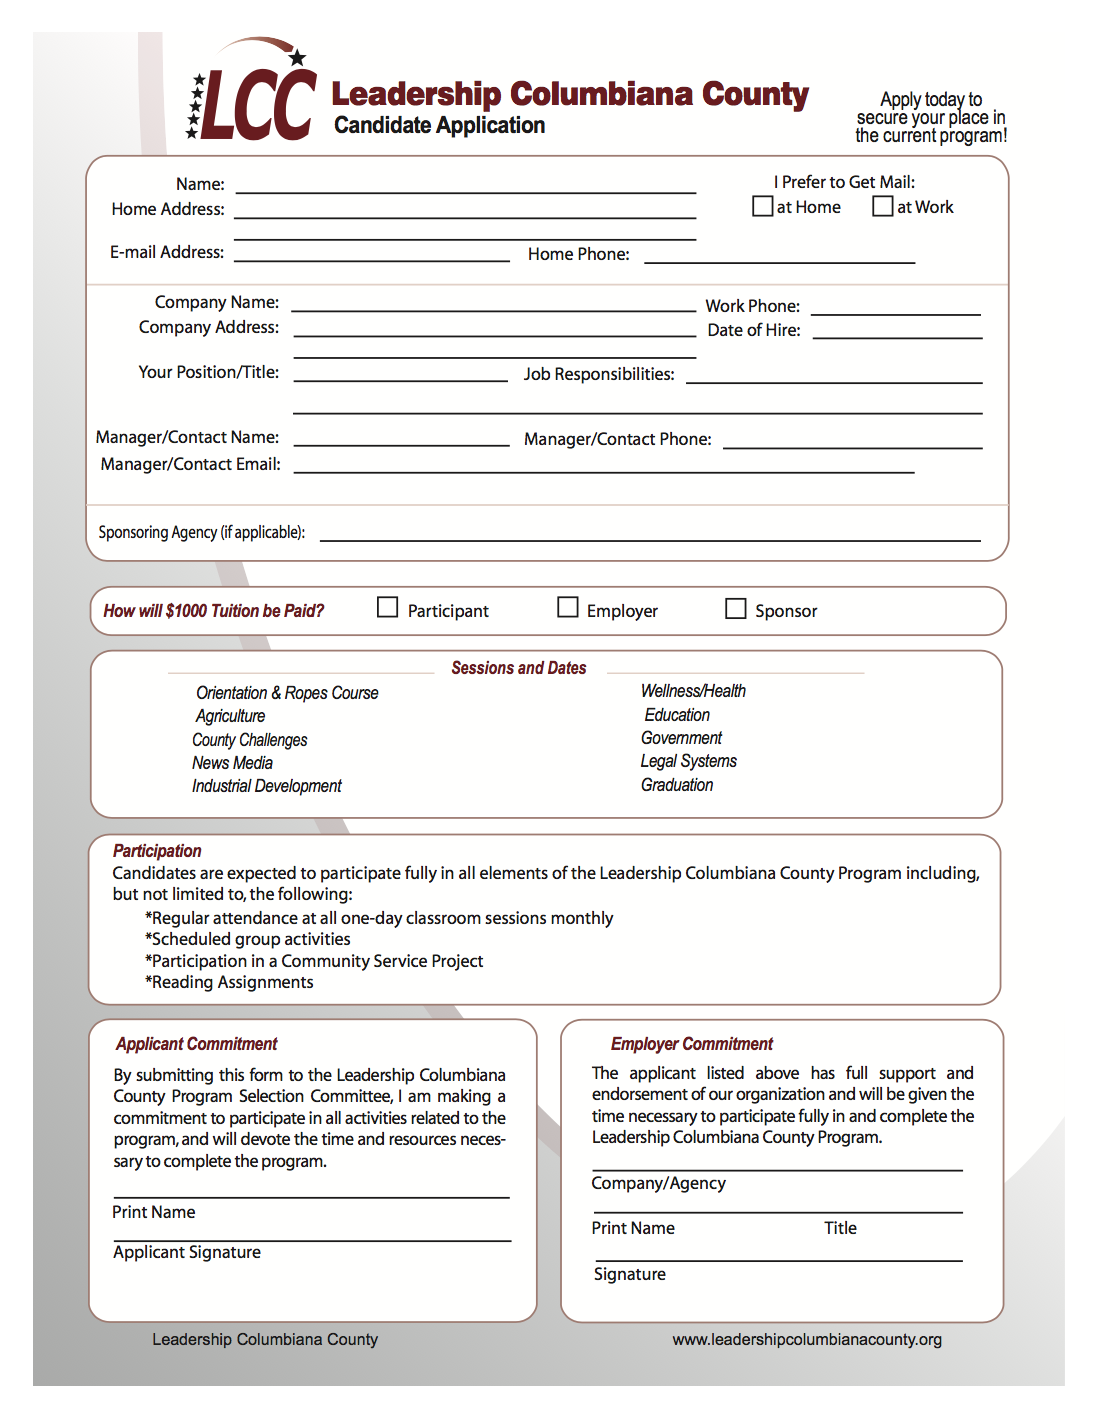 2017-2018 LCC Candidate Application Form